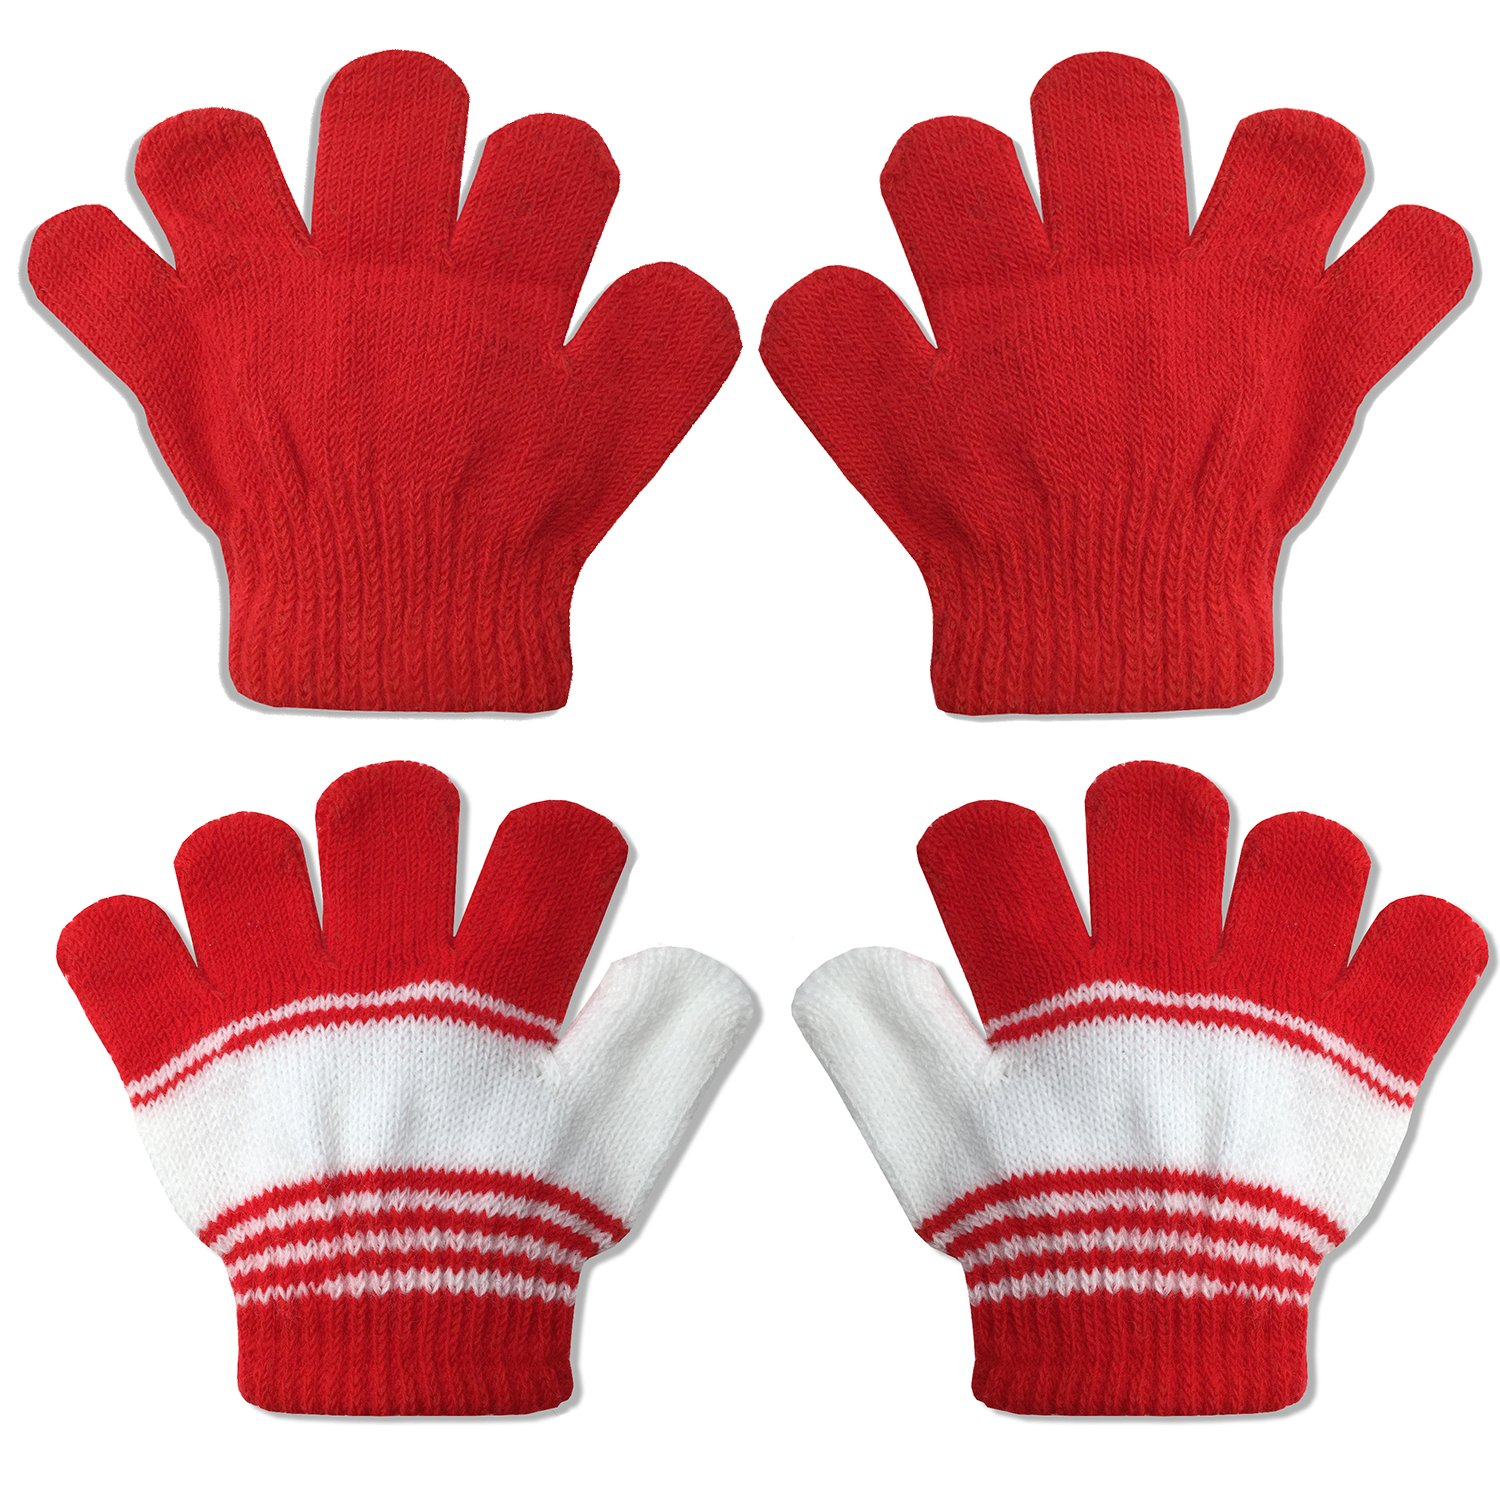 2 Pair Pack Infant to Toddler Baby Gloves Stretchy Knit Warm Winter (Ages 0-3) 4521-S-4-2PK-RED